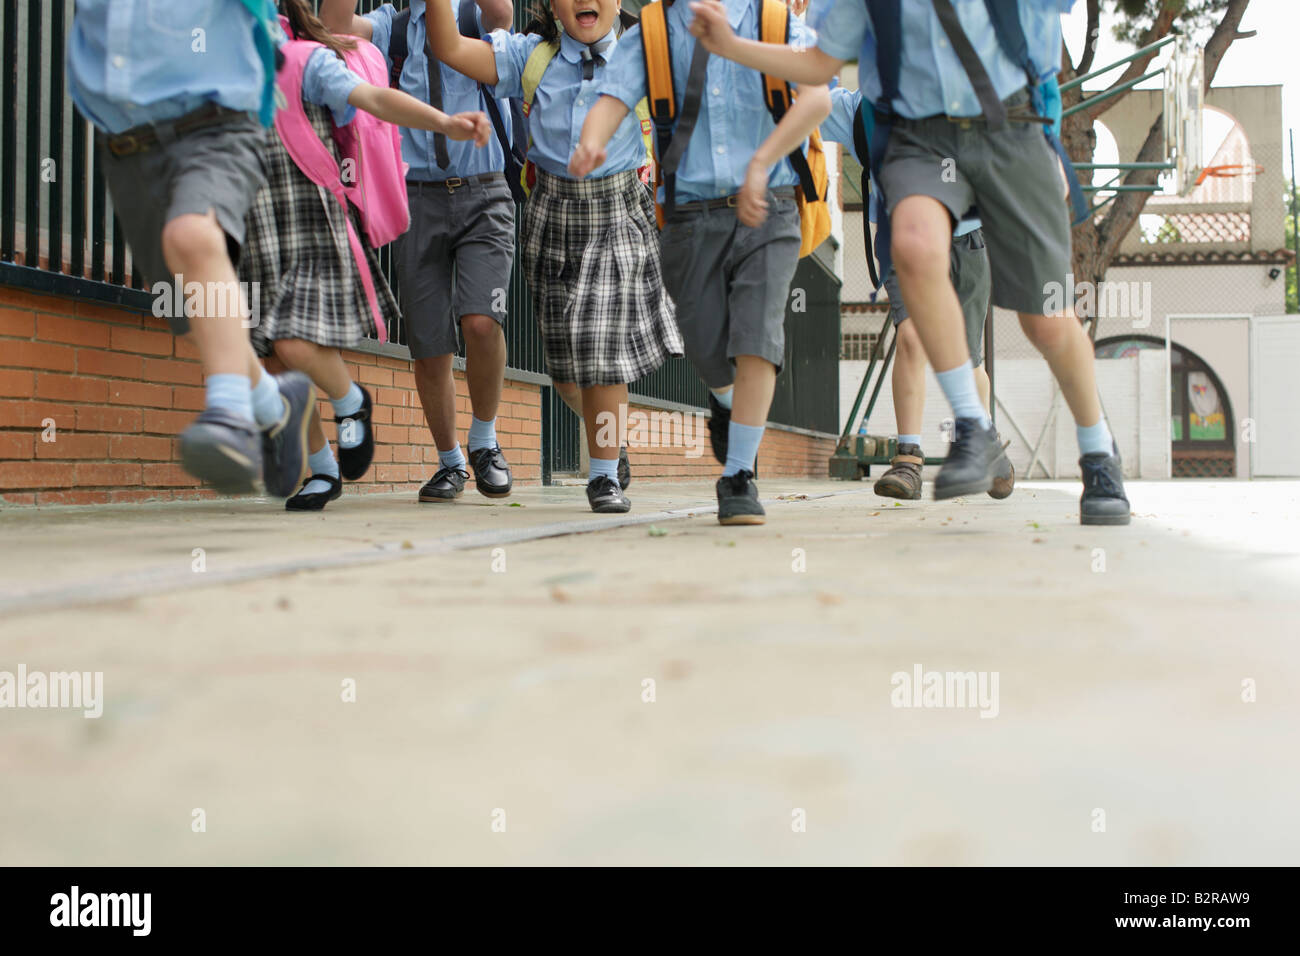 School children running low angle - Stock Image